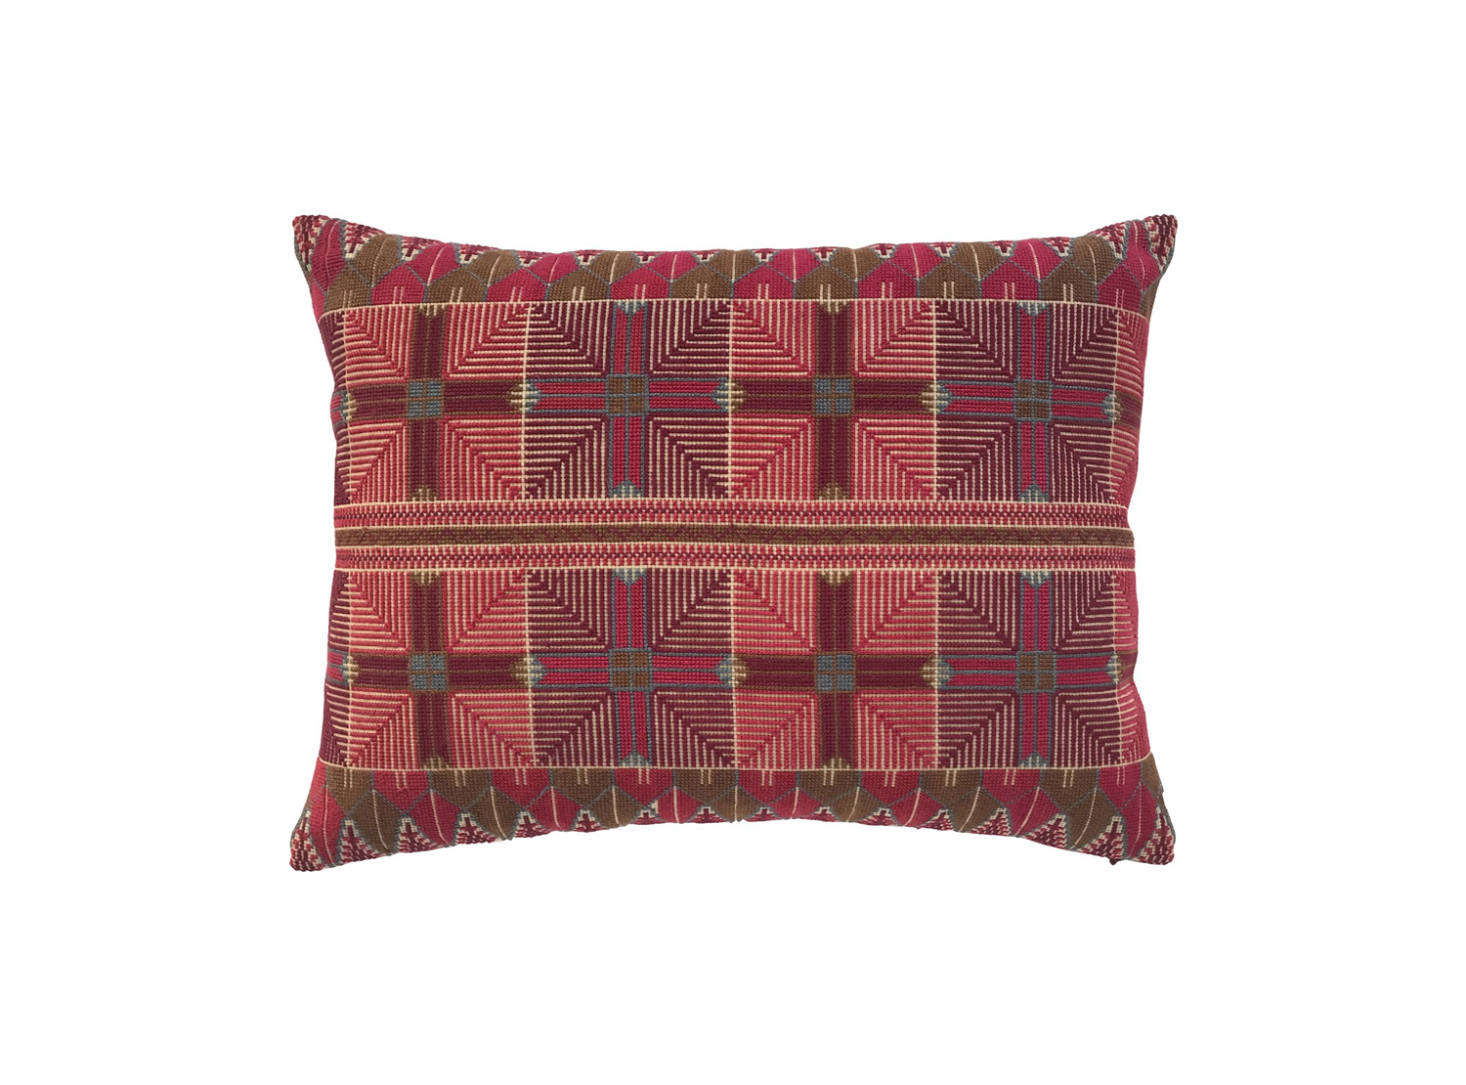 The Ensaf Pillow features a design inspired by a traditional pattern embroidered onto the edges of a dress; $350.